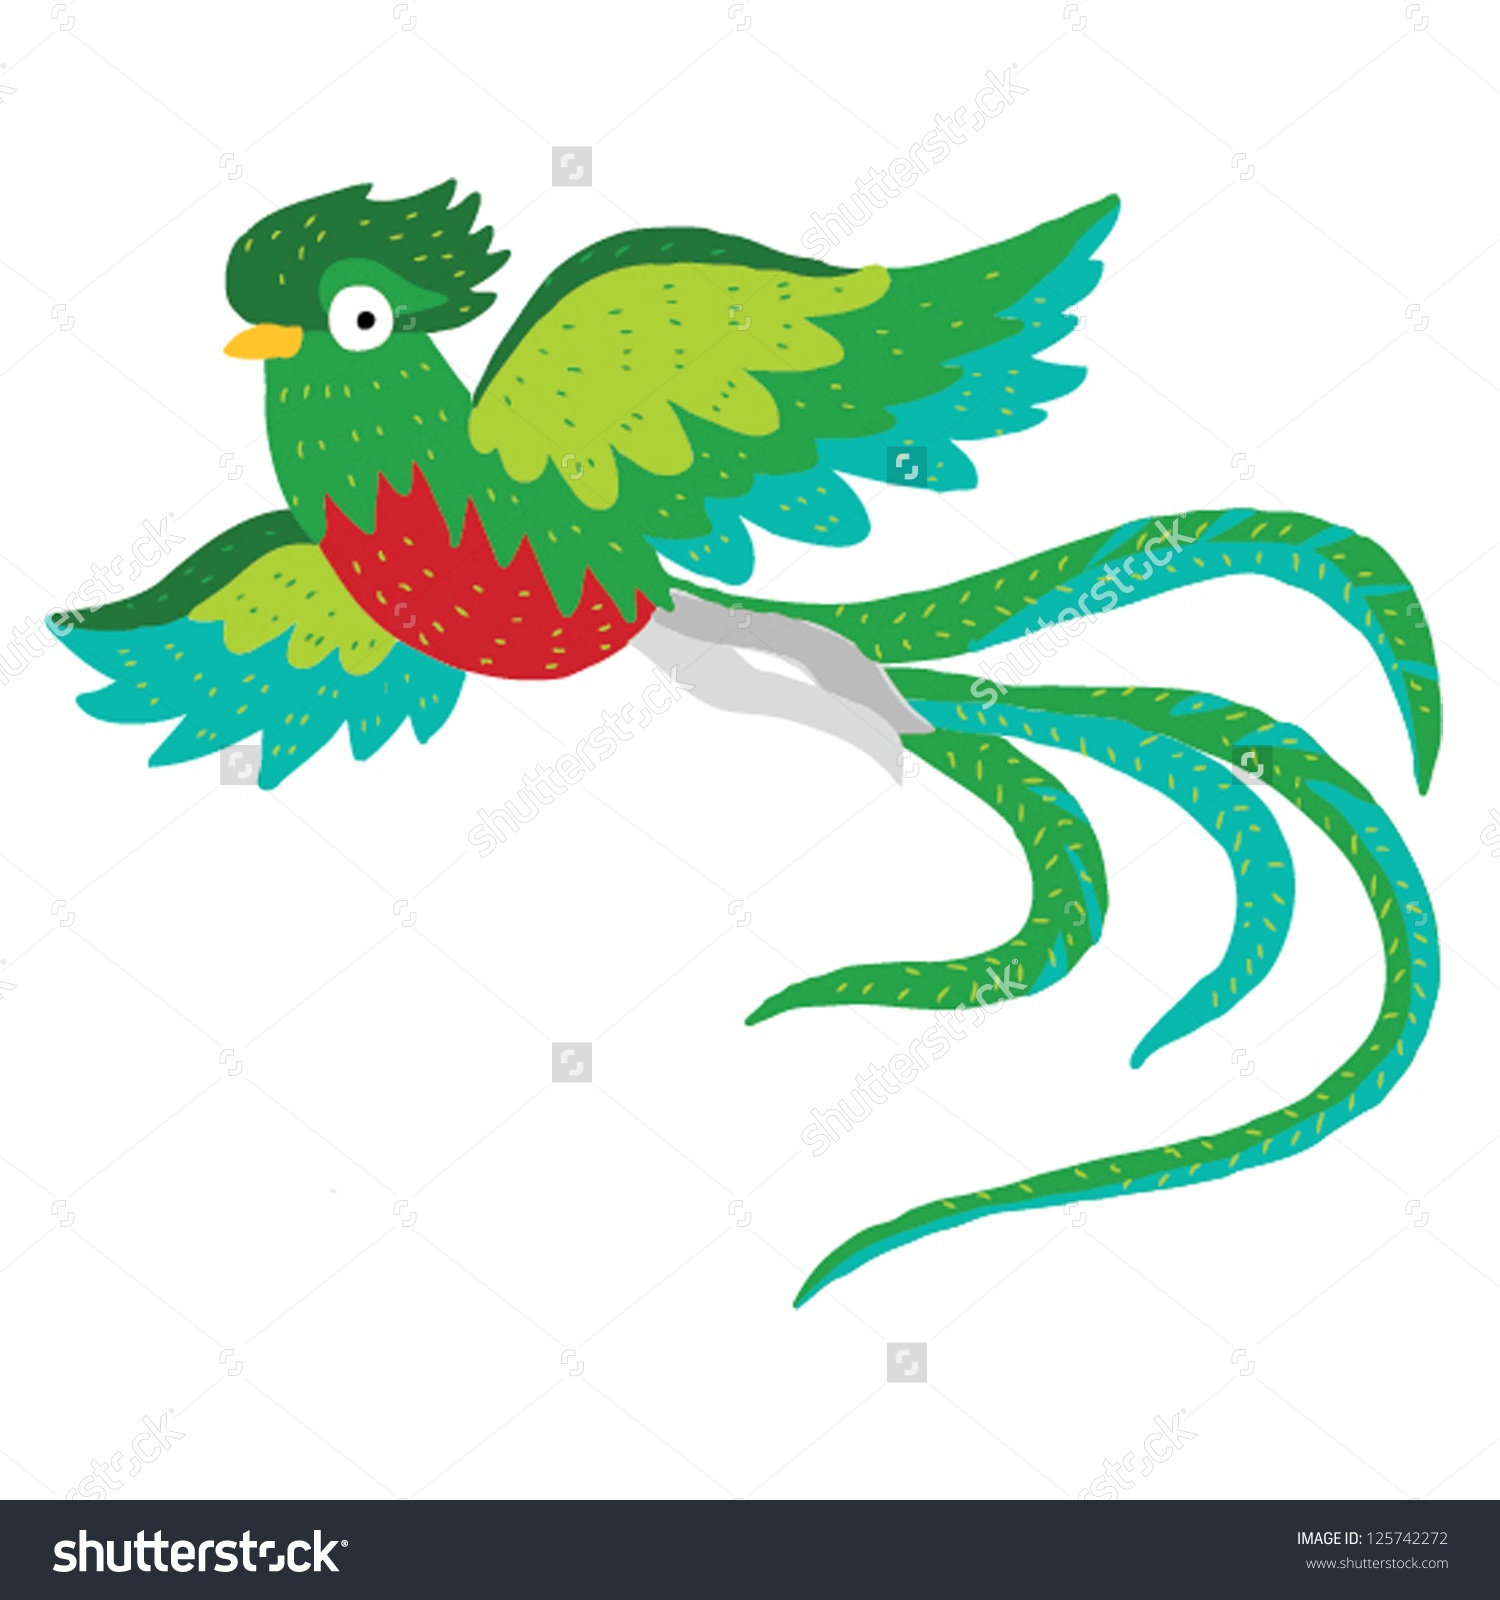 Quetzal  clipart #20, Download drawings